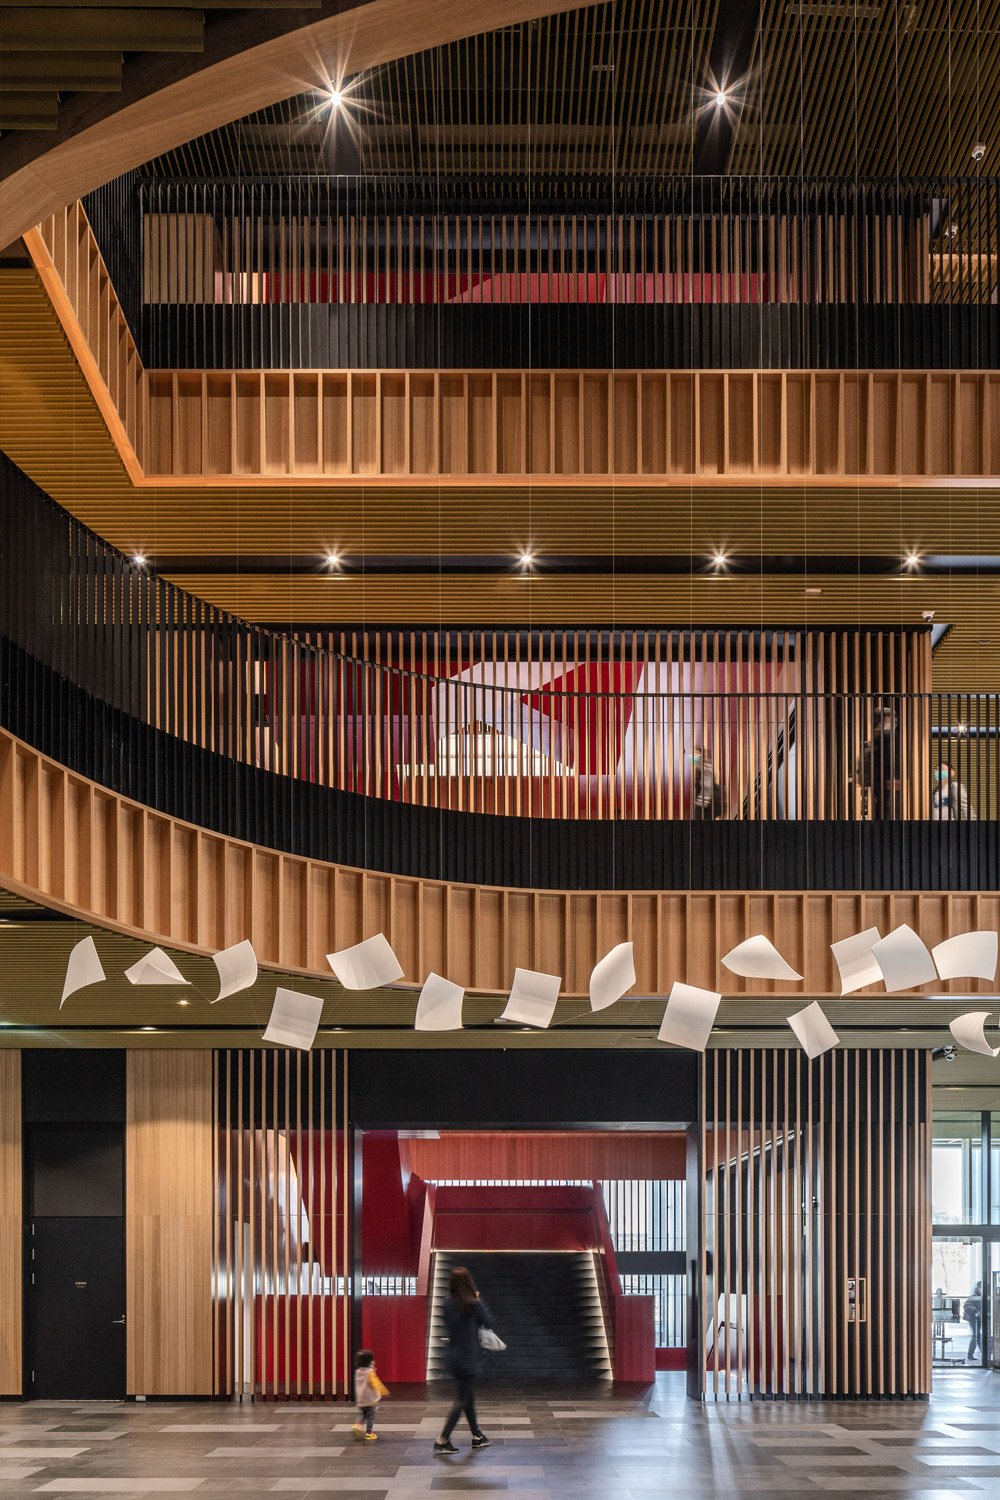 A sculptural staircase adds another playful element to the building, intersecting all levels and visible everywhere through the subtle wooden-slatted flight of stairs. Ethan Lee